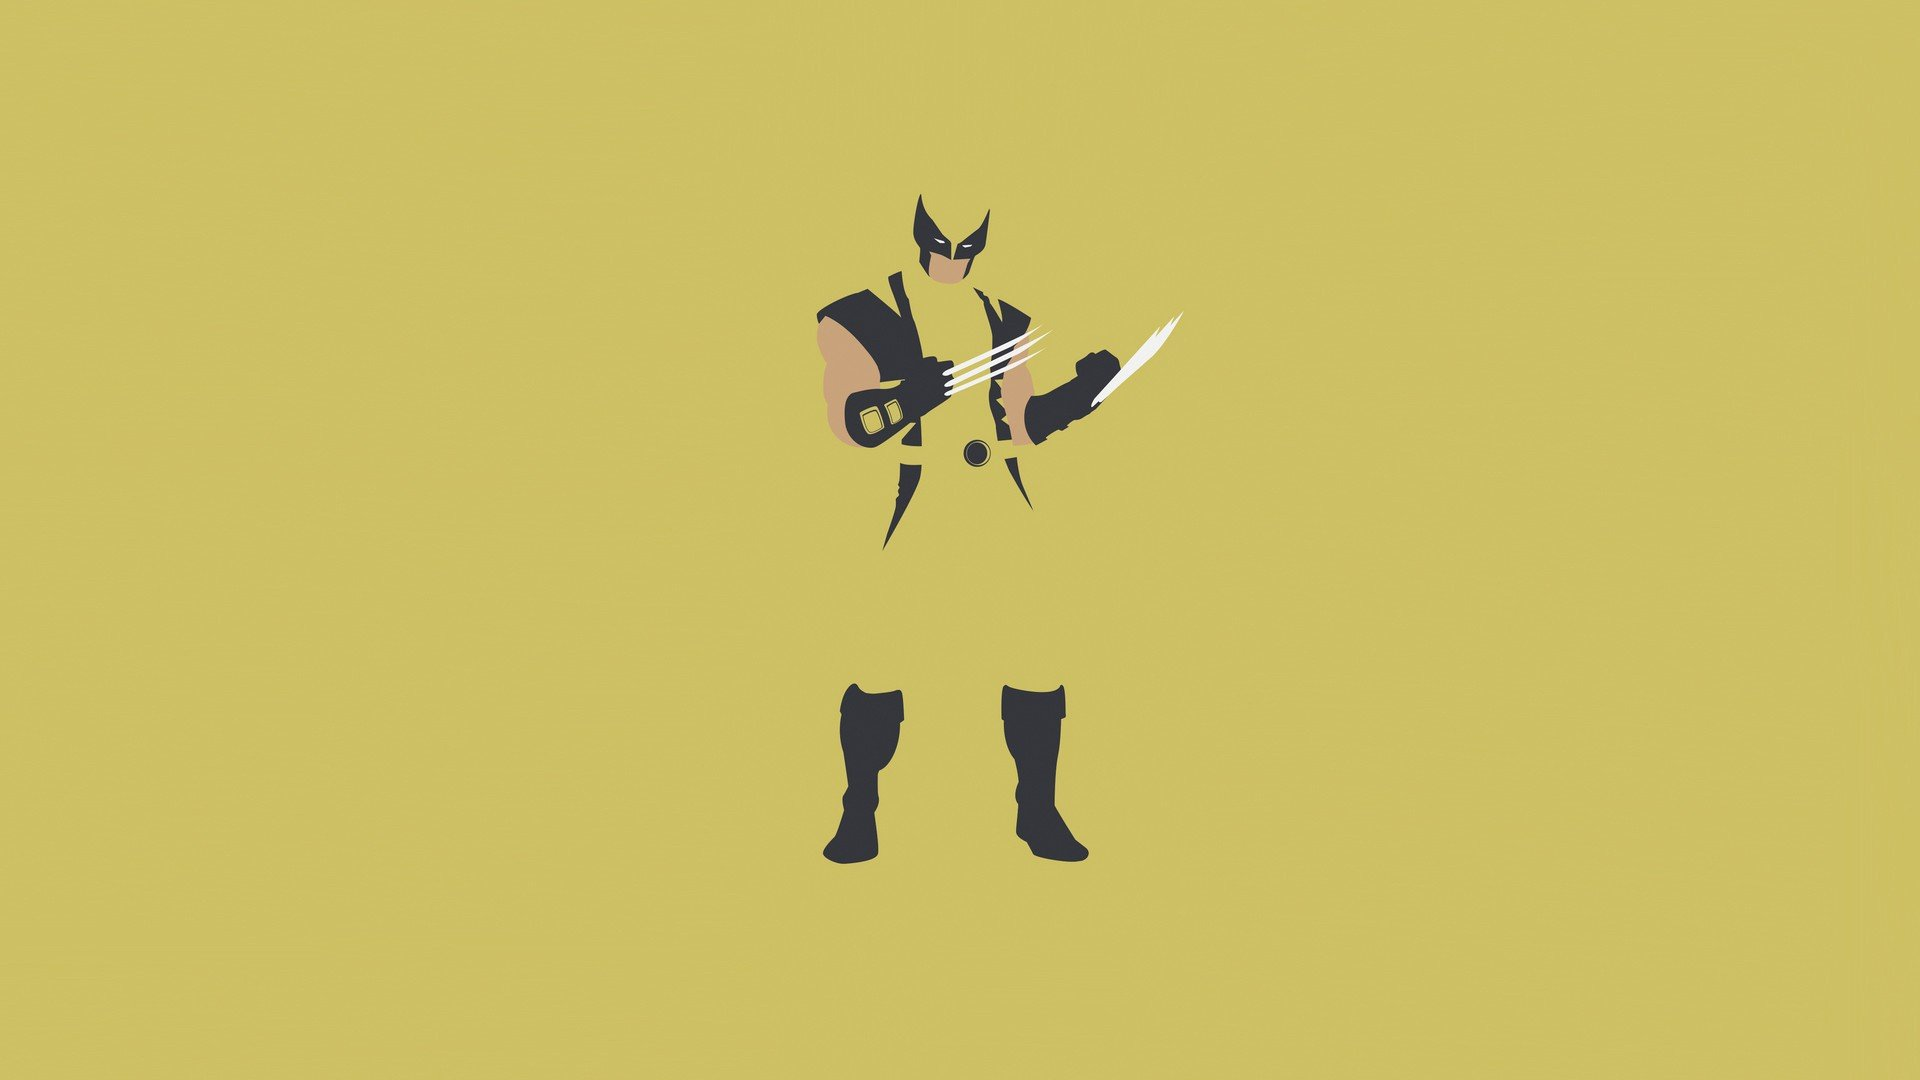 Minimalist Wolverine Wallpaper Yellow Marvel Comics X MEN 1920x1080